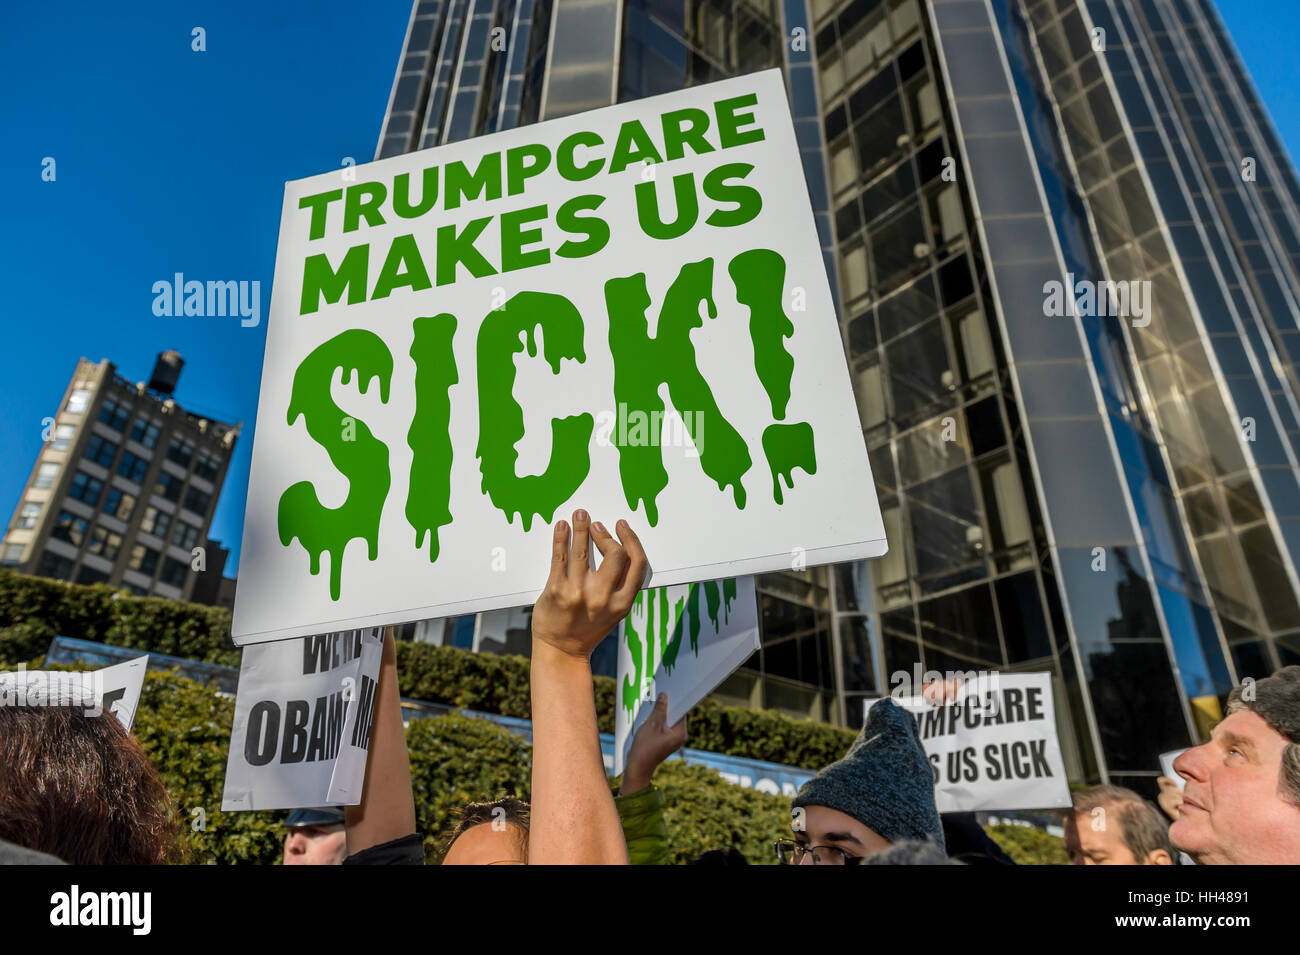 New York City, USA. 15th January, 2017. Hundreds of activists and allies from the newly-formed anti-Trump group Stock Photo